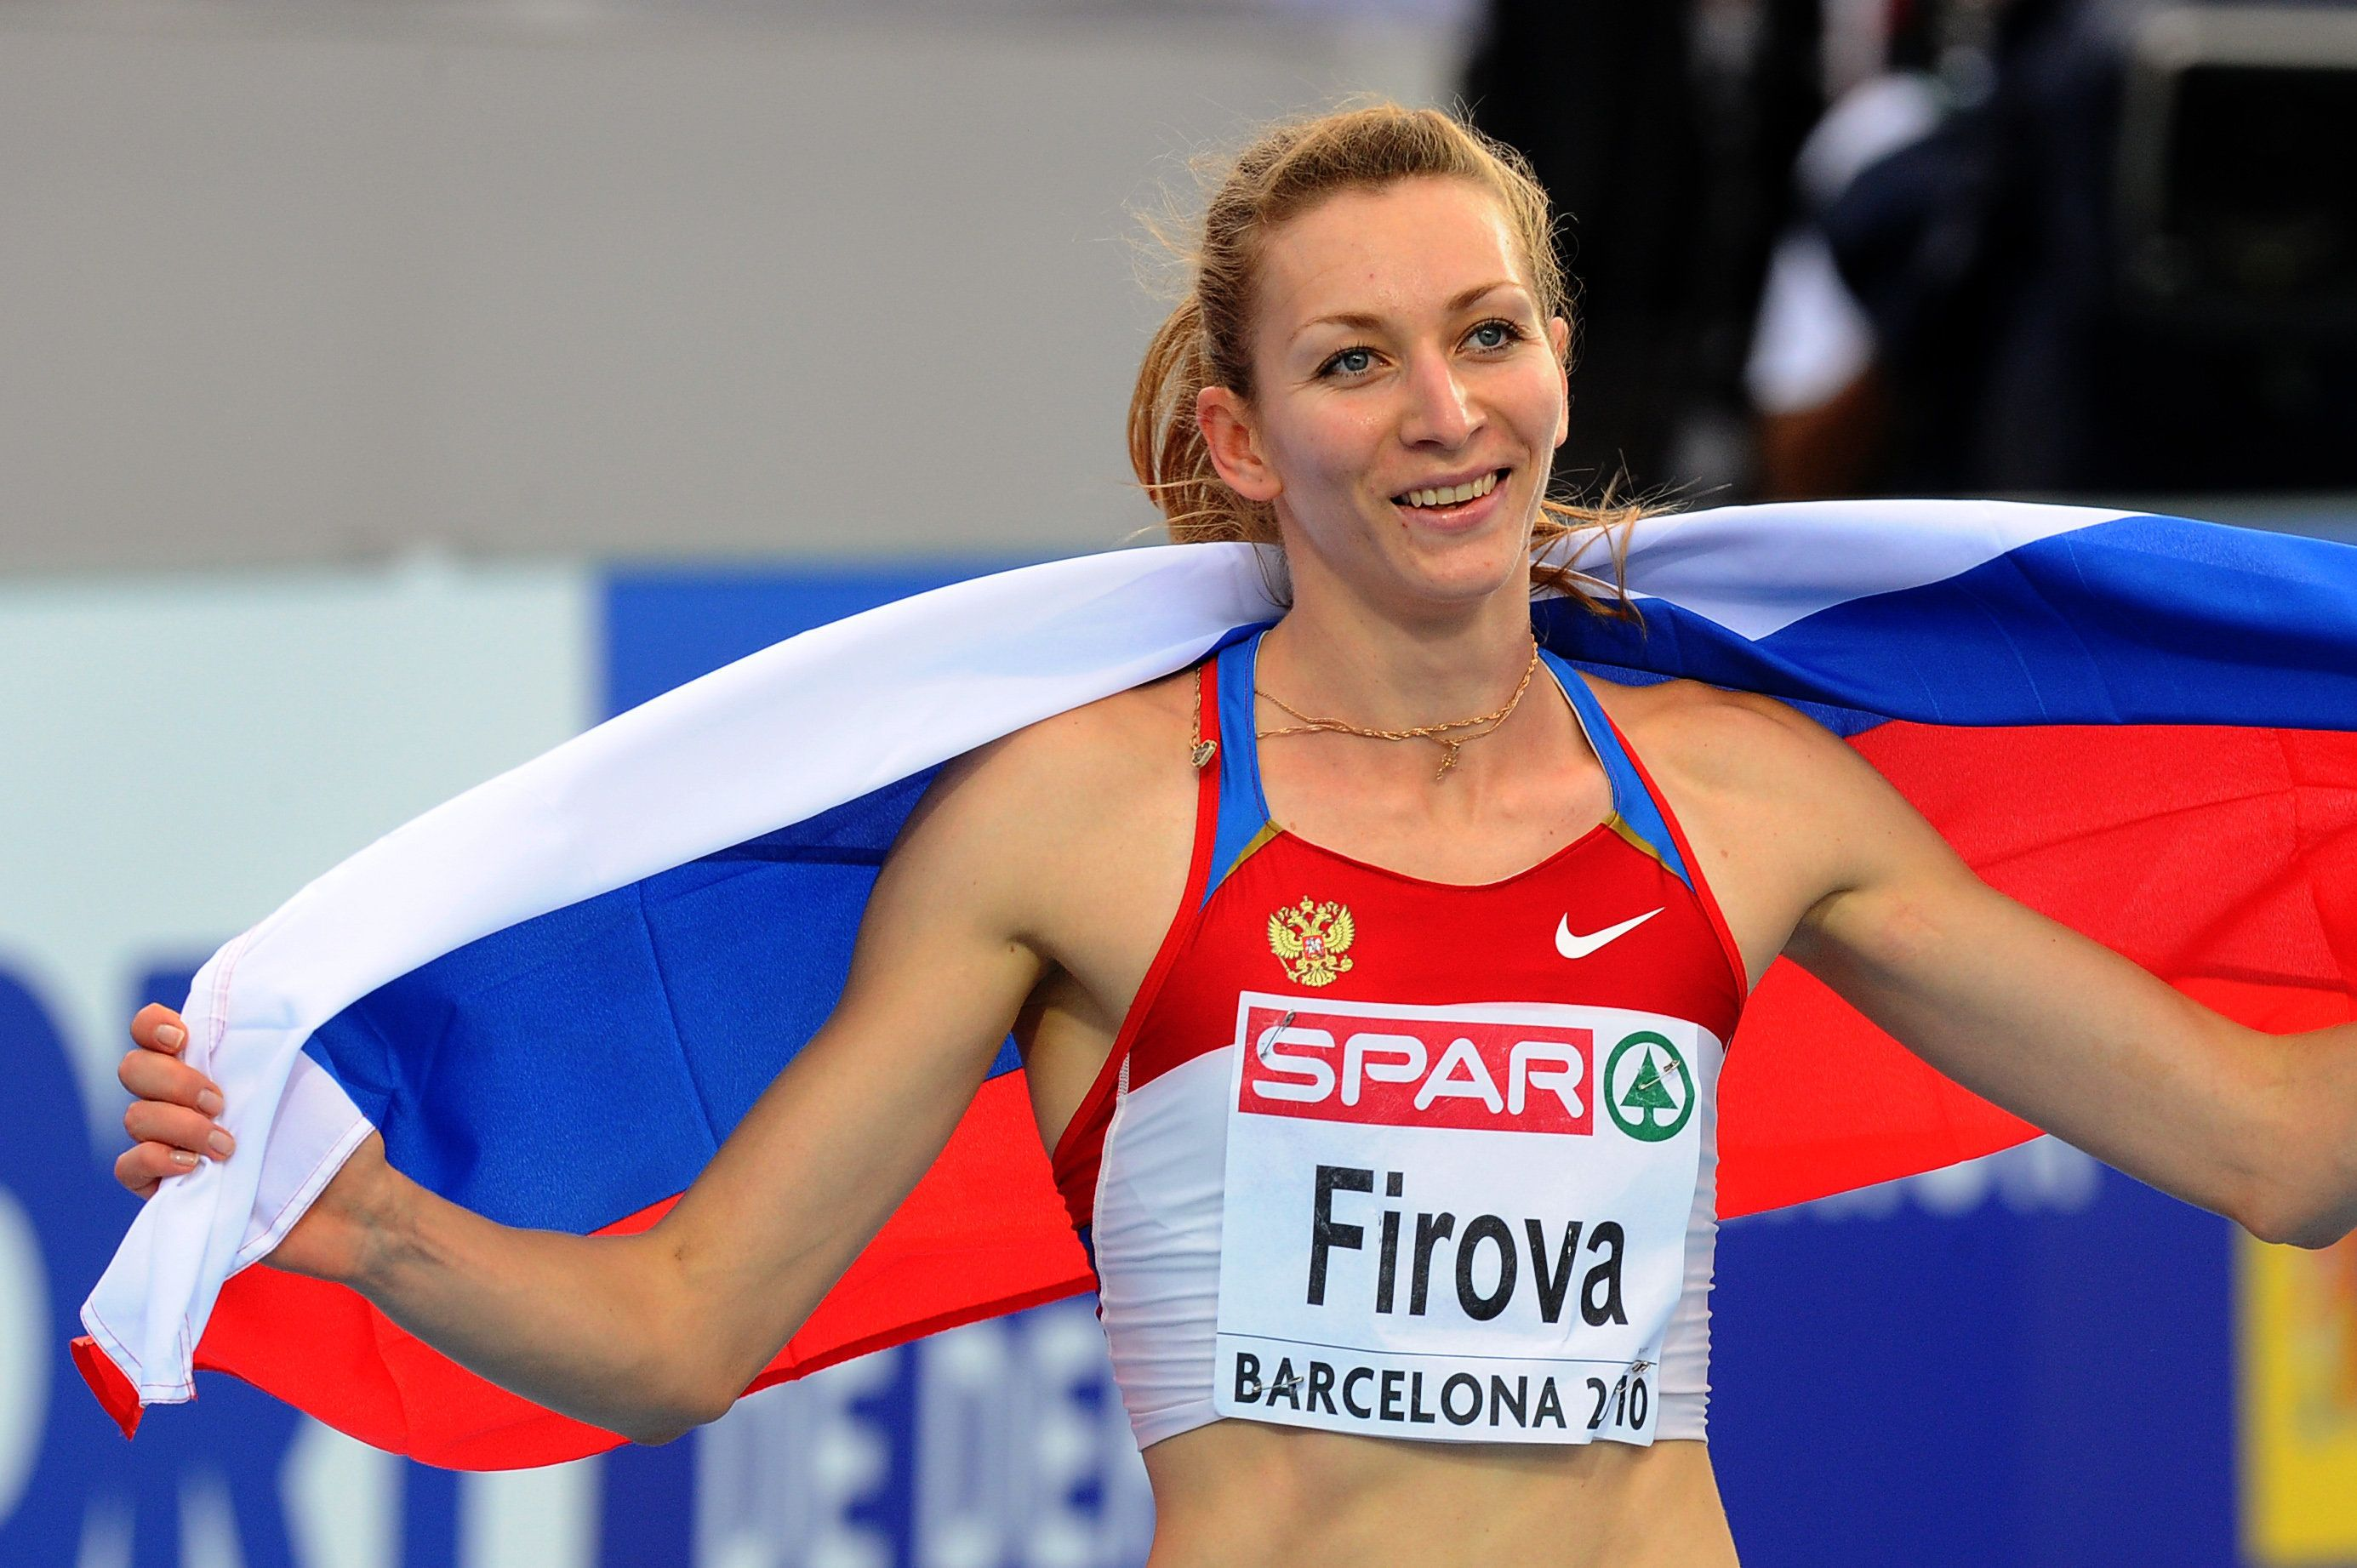 Russia's Tatyana Firova reacts after winning the women's 400m final at the 2010 European Athletics Championships at the Olympic Stadium in Barcelona on July 30, 2010. AFP PHOTO / LLUIS GENE (Photo credit should read LLUIS GENE/AFP/Getty Images)